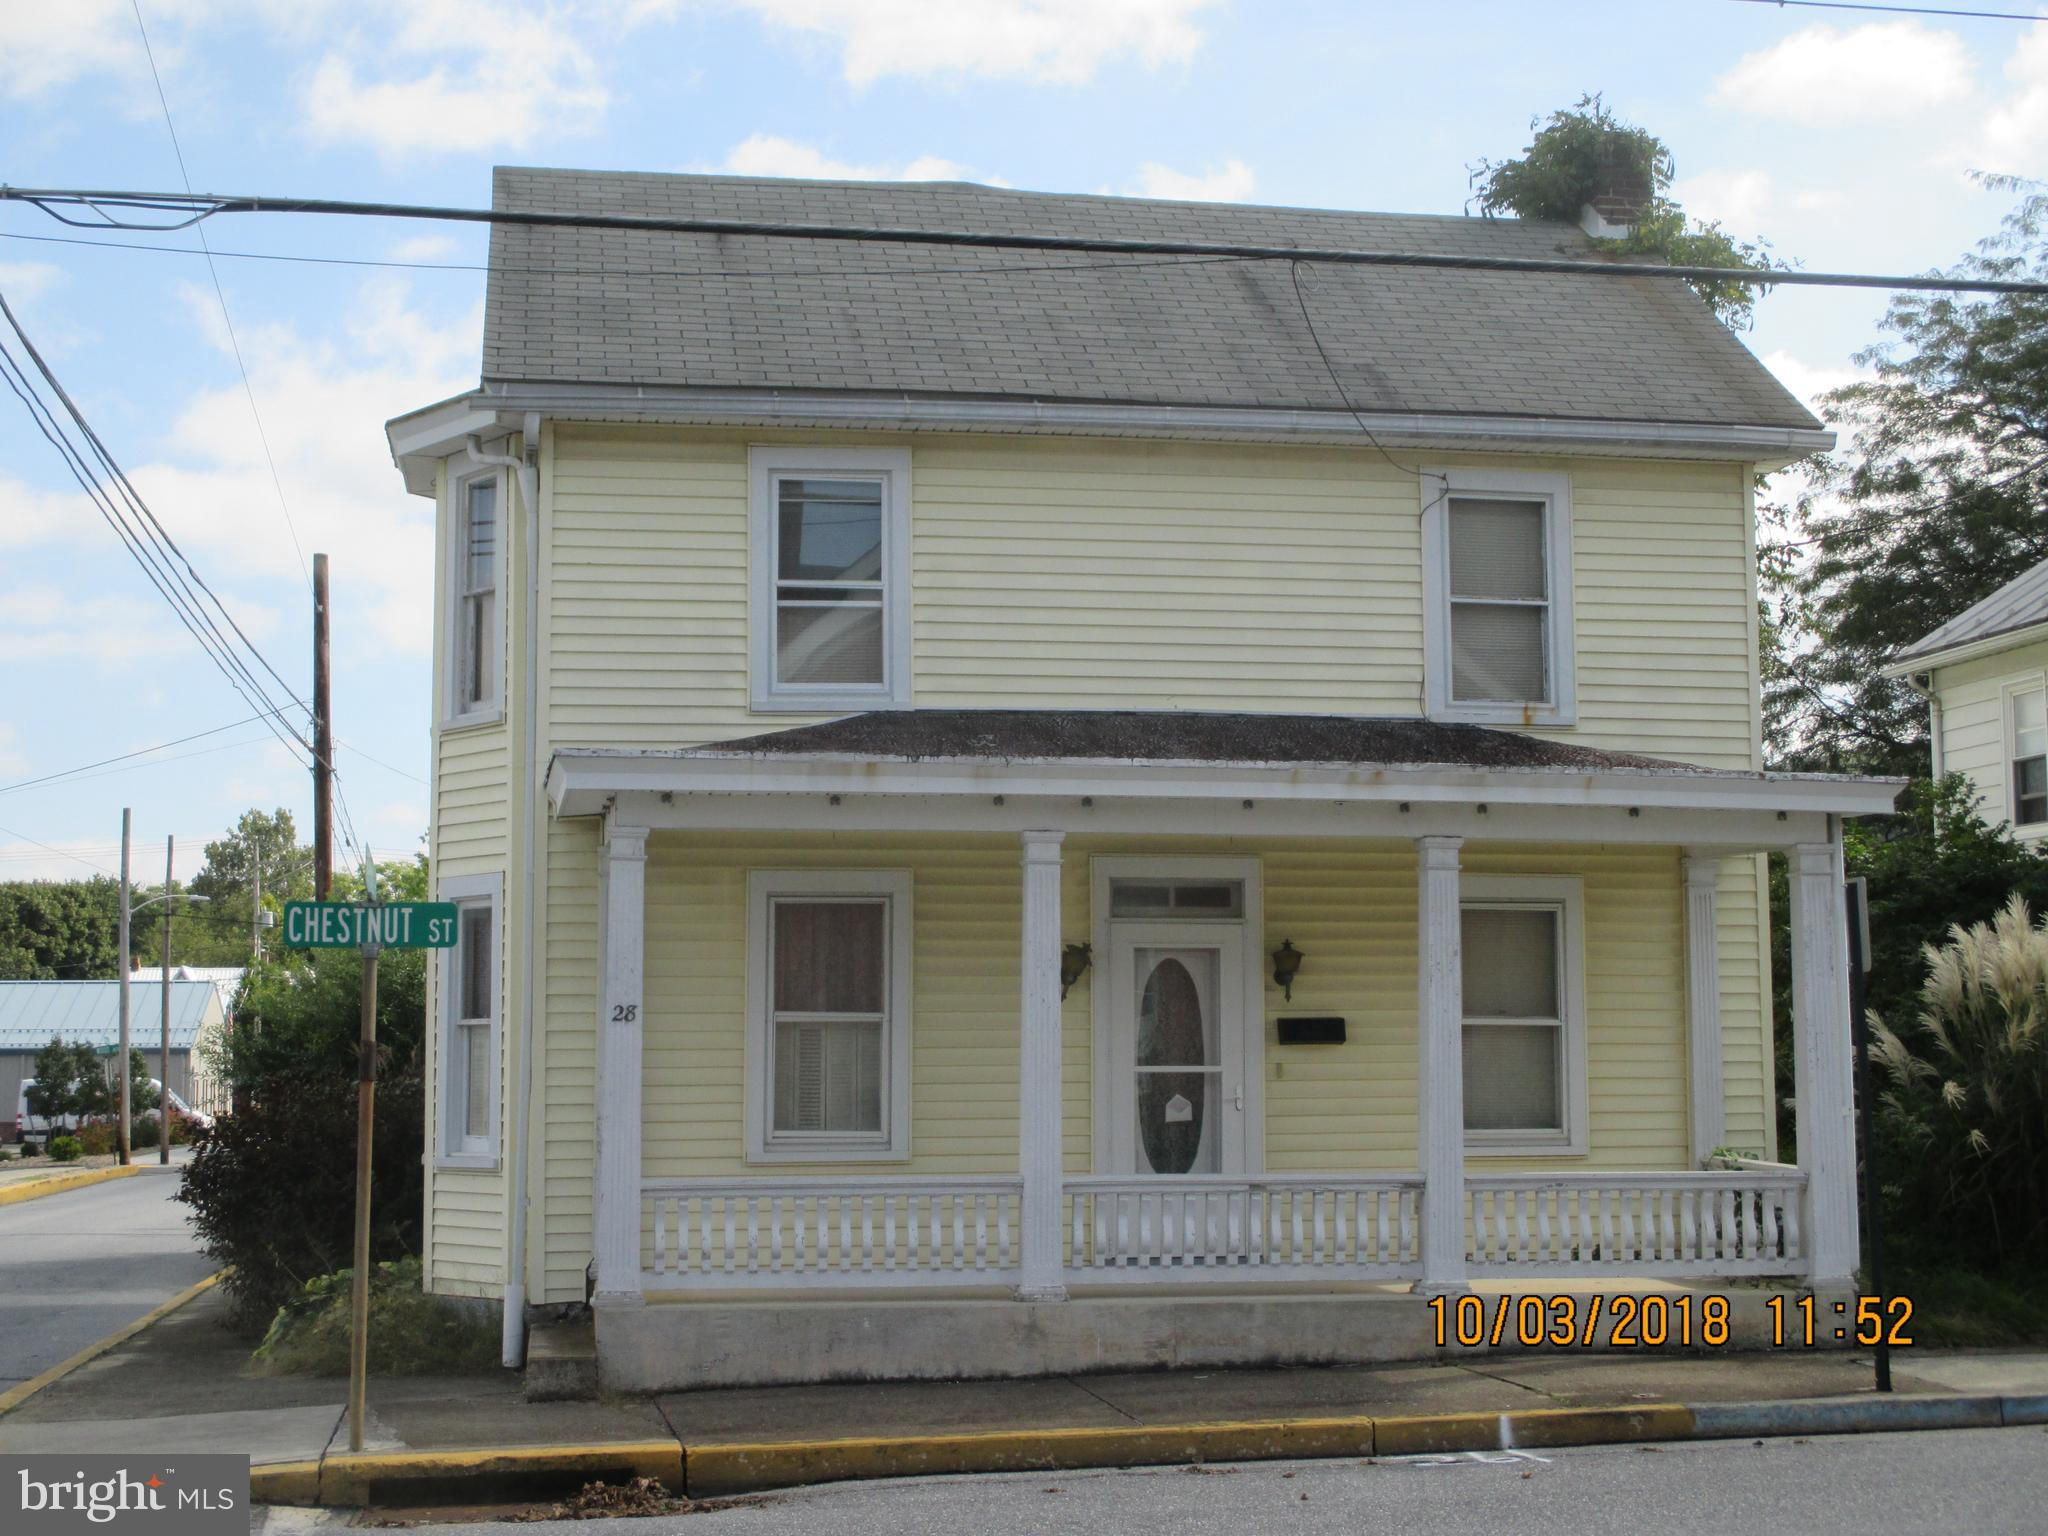 28 CHESTNUT STREET, MOUNT HOLLY SPRINGS, PA 17065